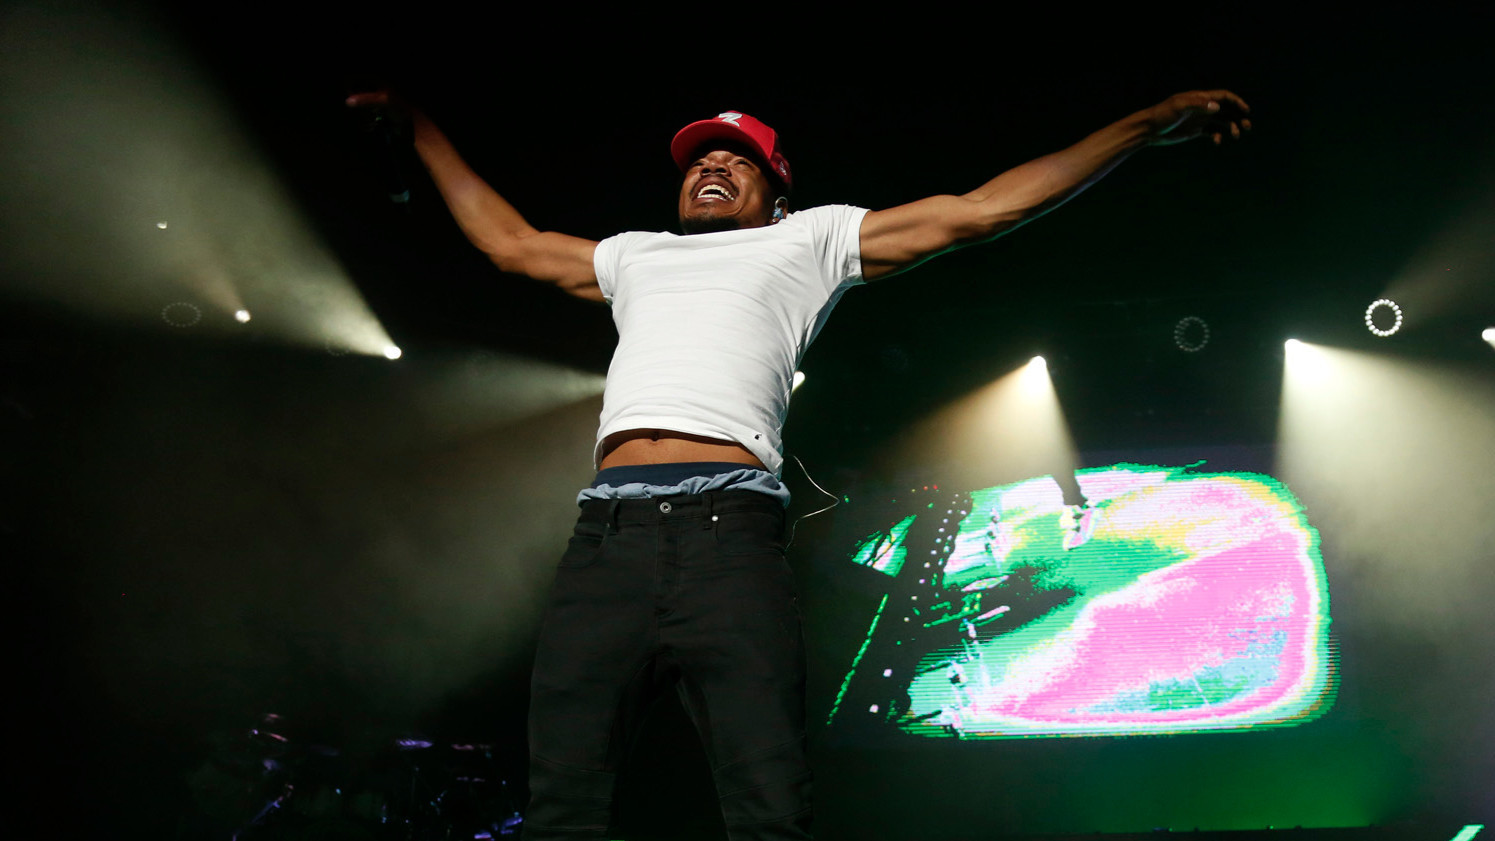 sunday on saturday night chance the rapper brings